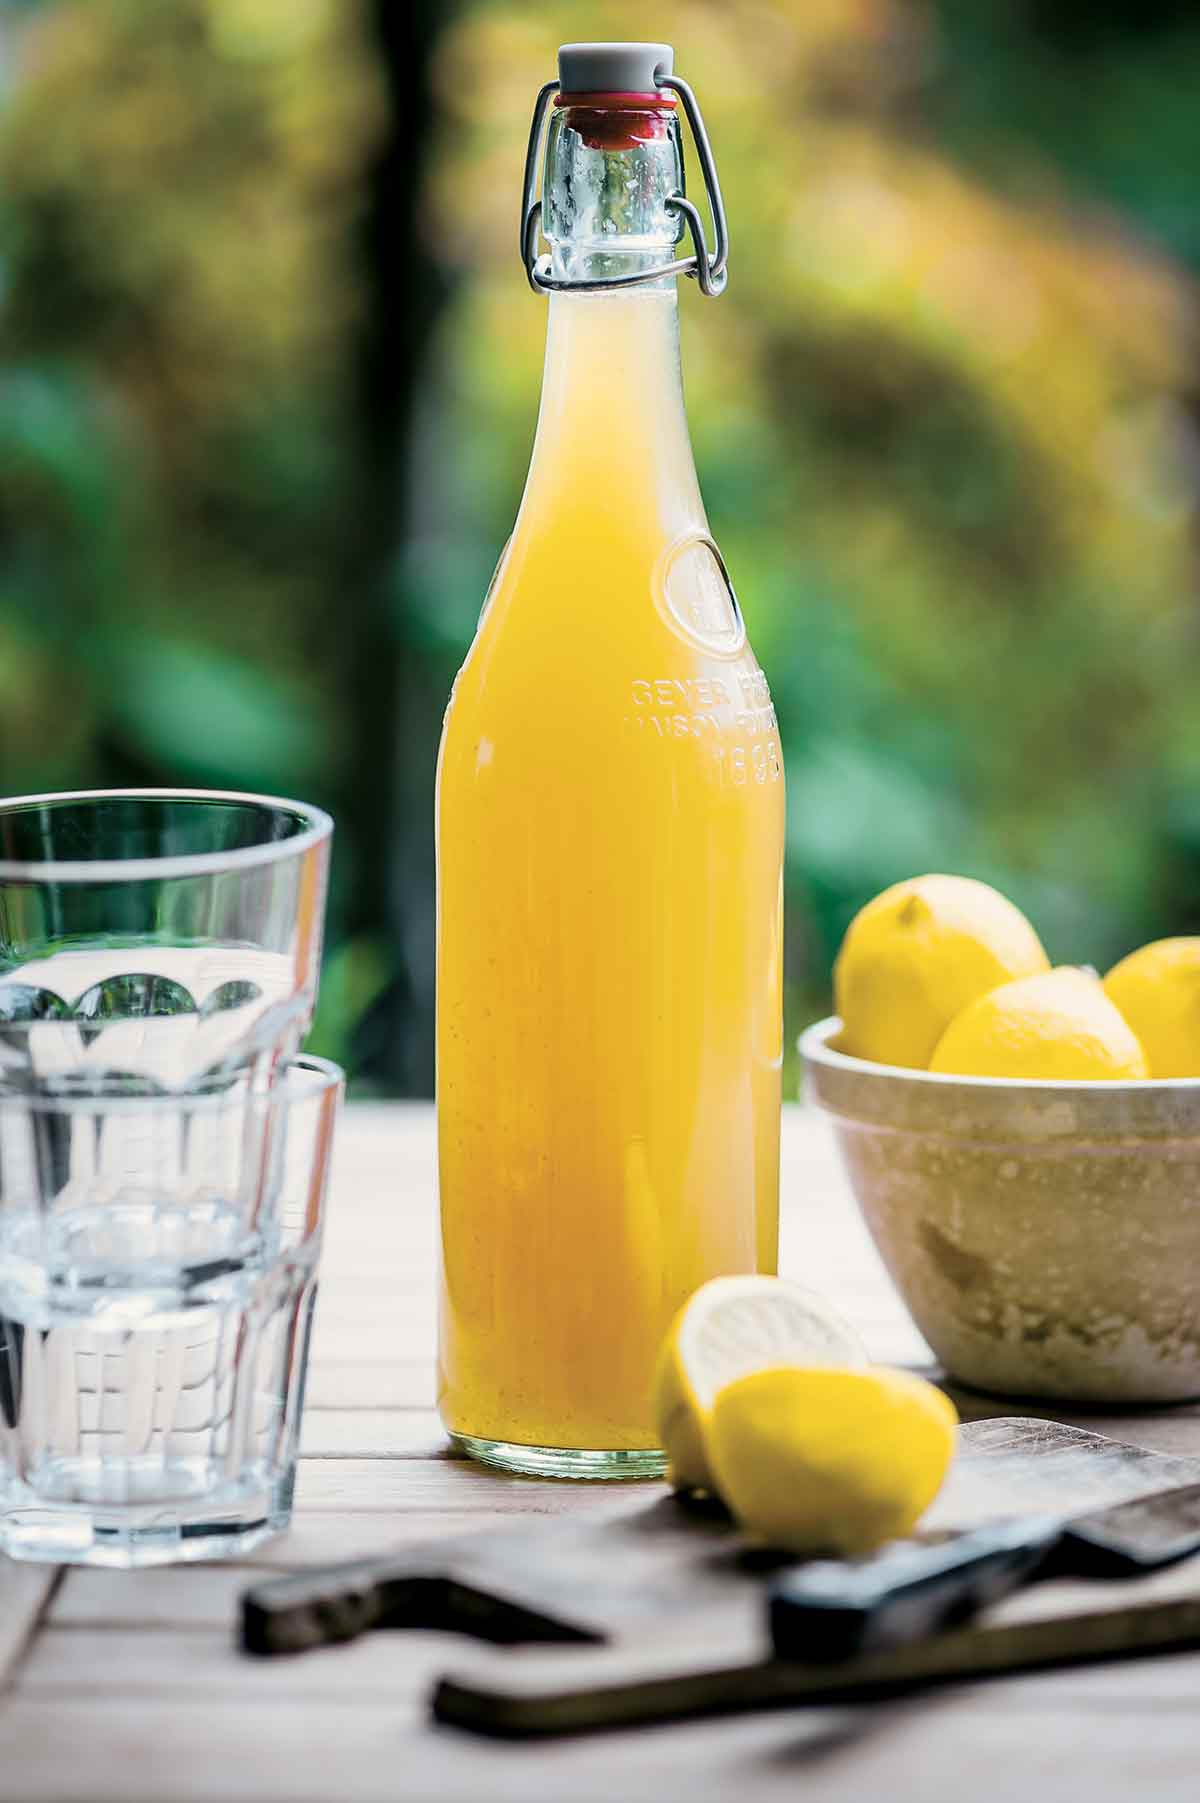 A glass bottle filled with homemade lemonade syrup, a bowl of lemons, and two glasses on a wooden table.